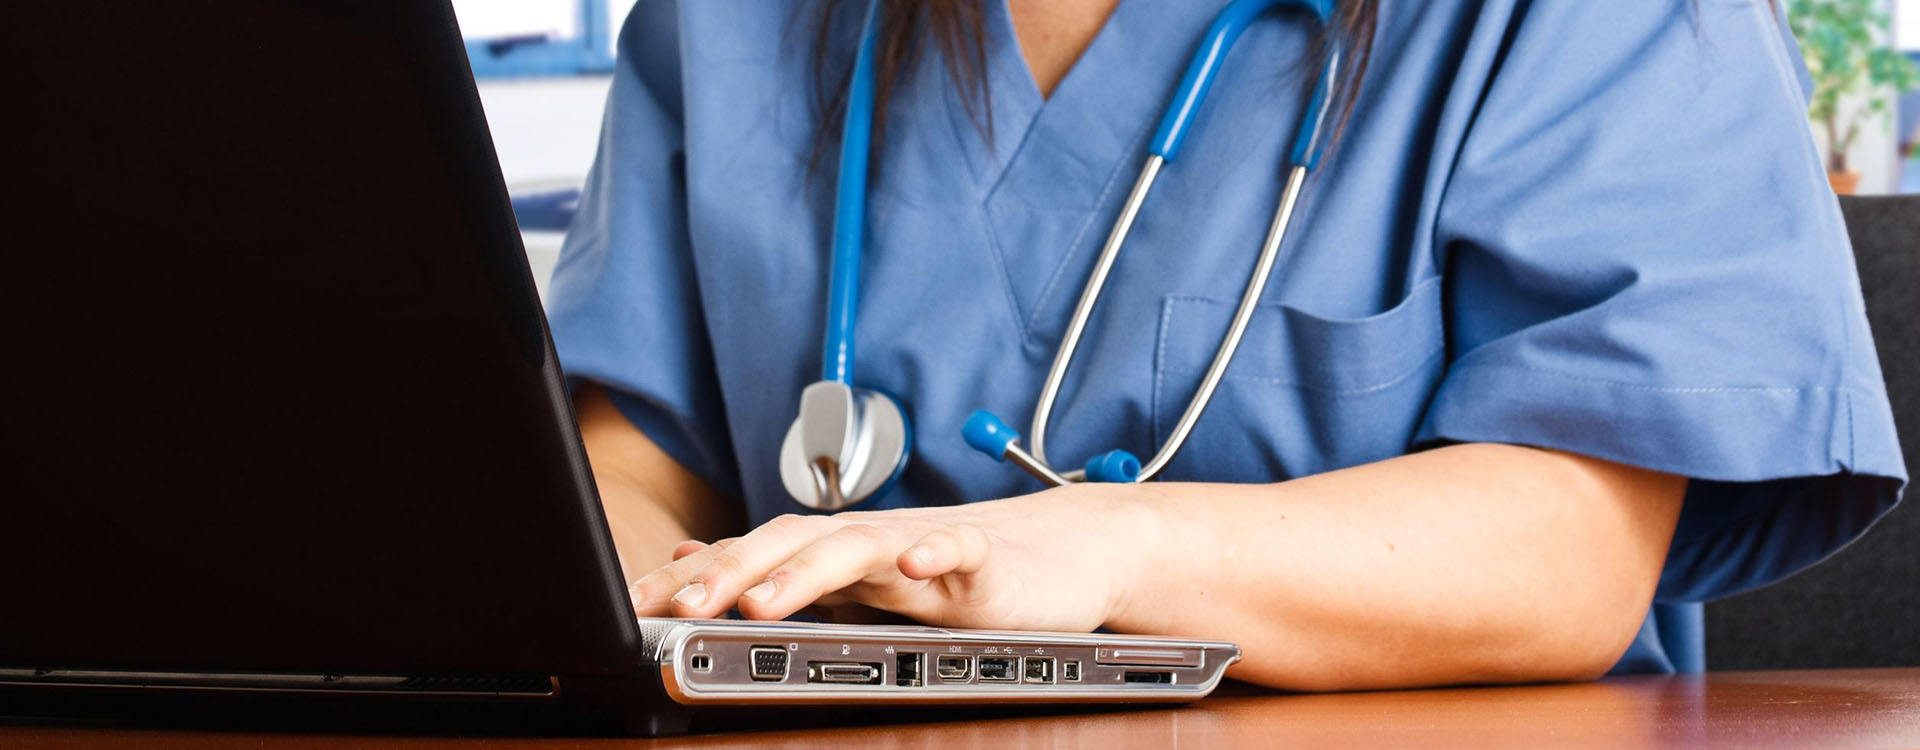 medical professional typing on a laptop